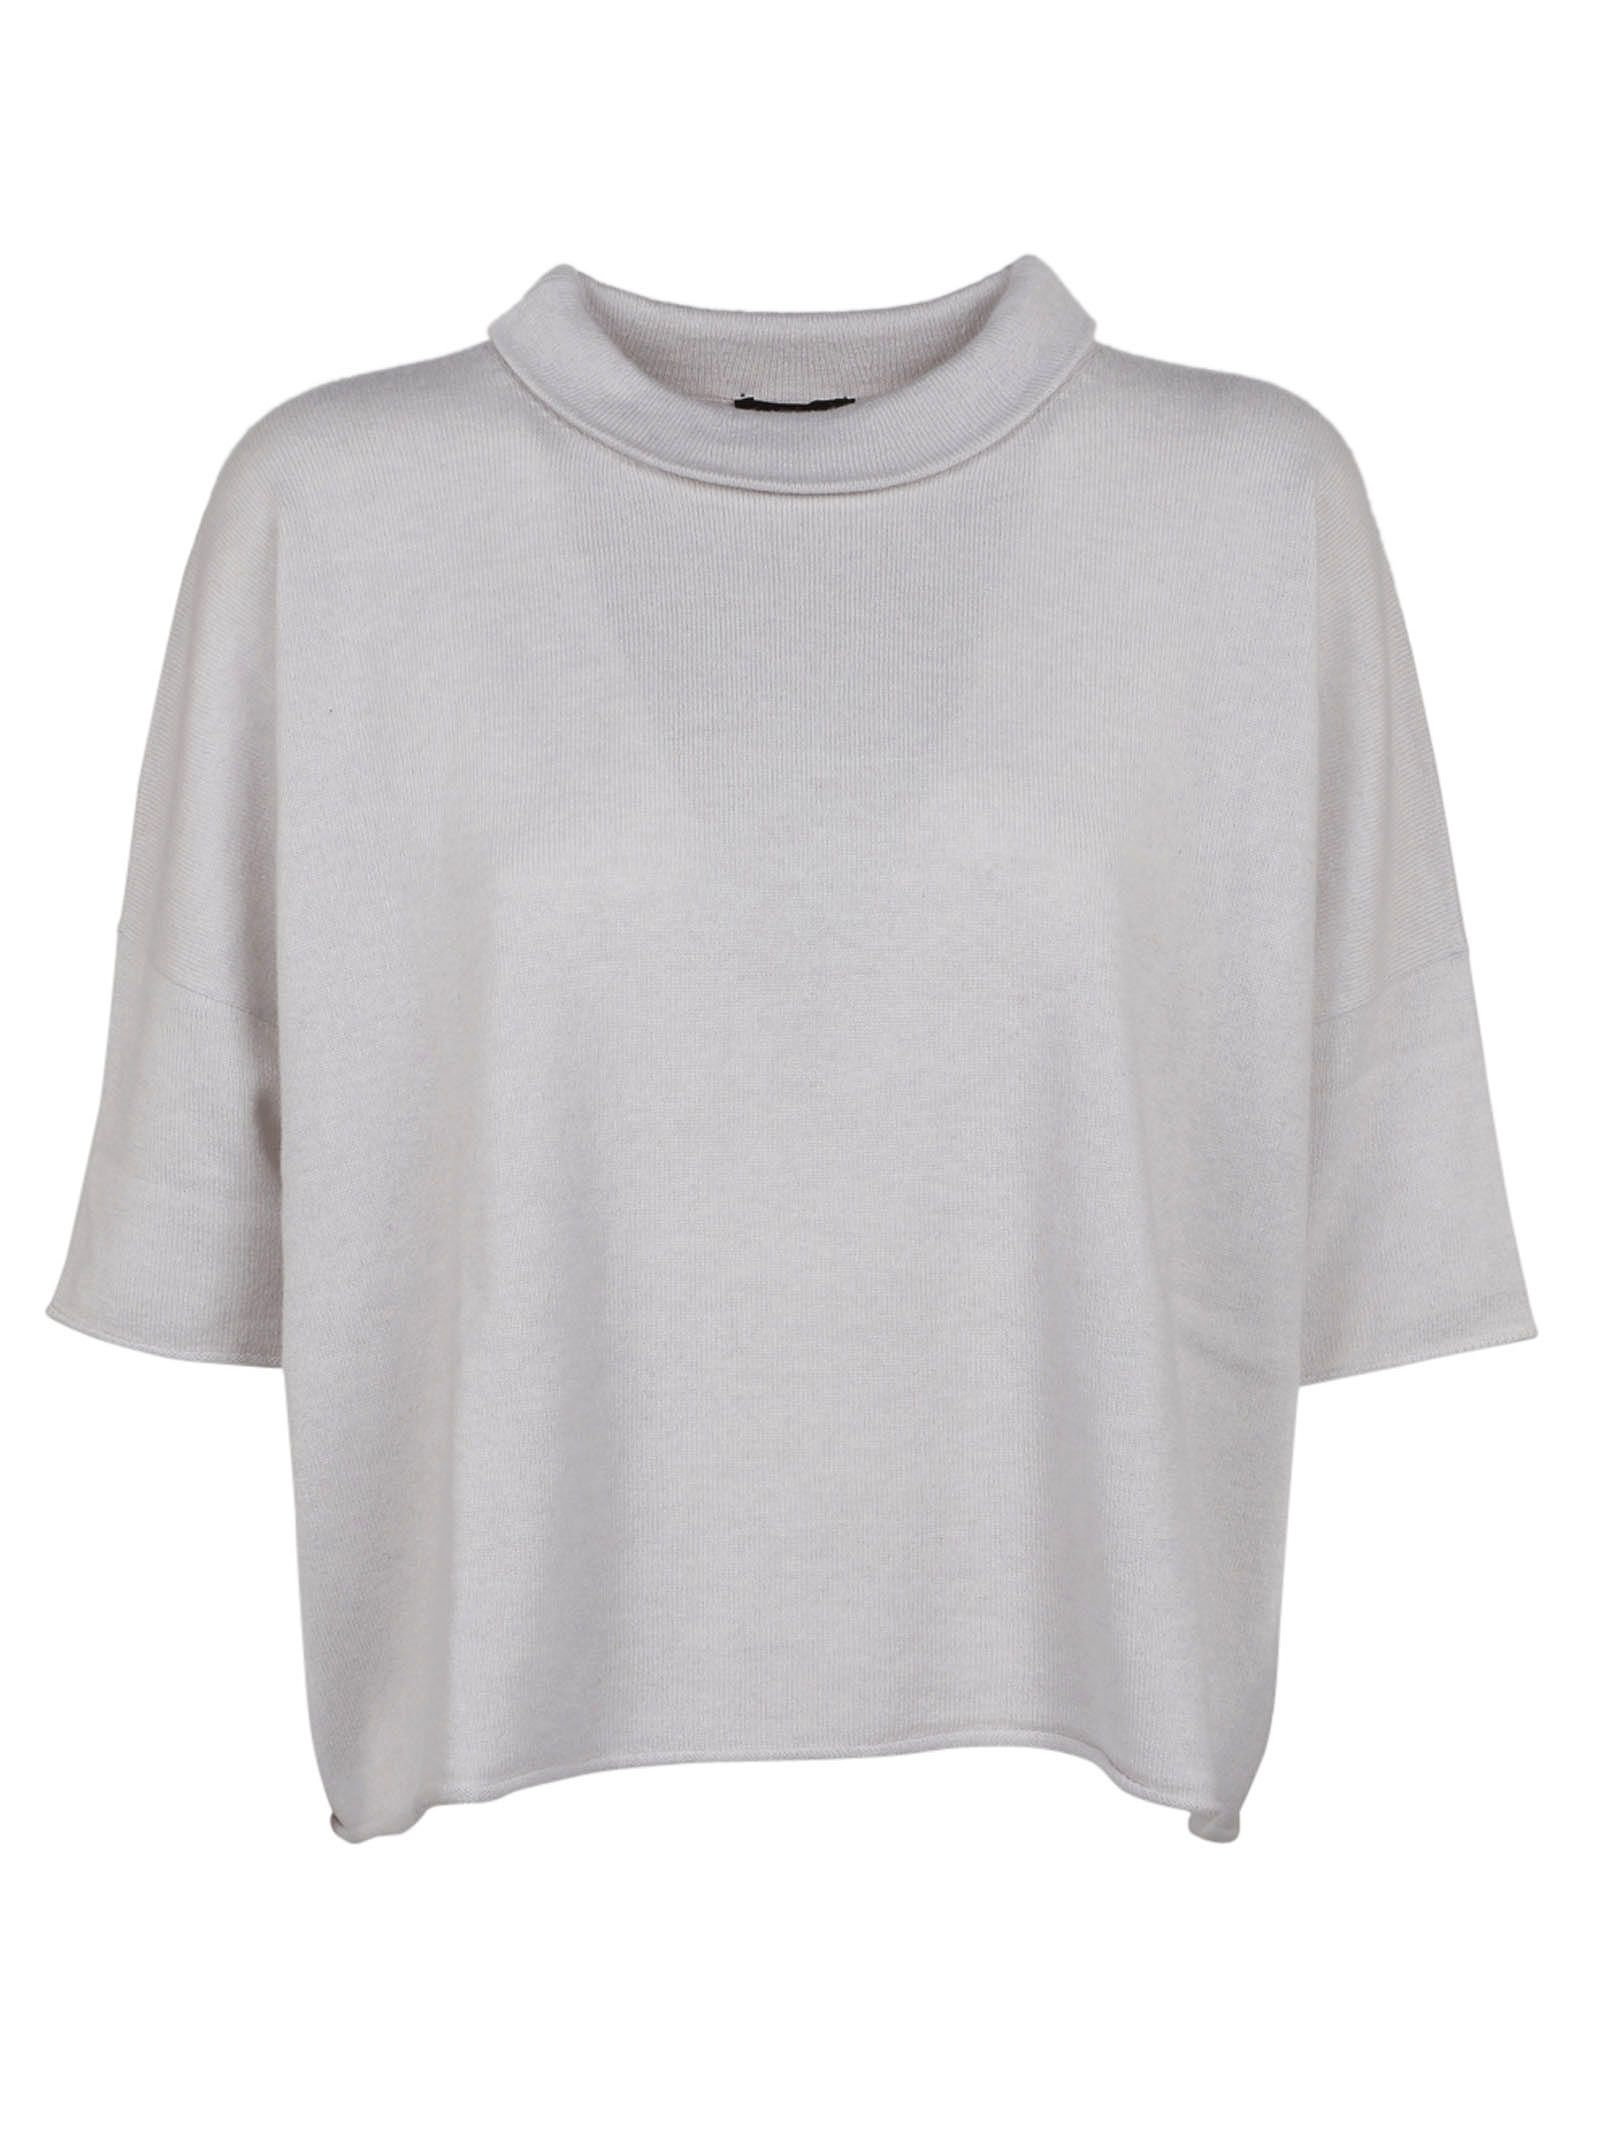 Peserico Folded Double Layered Collar Top